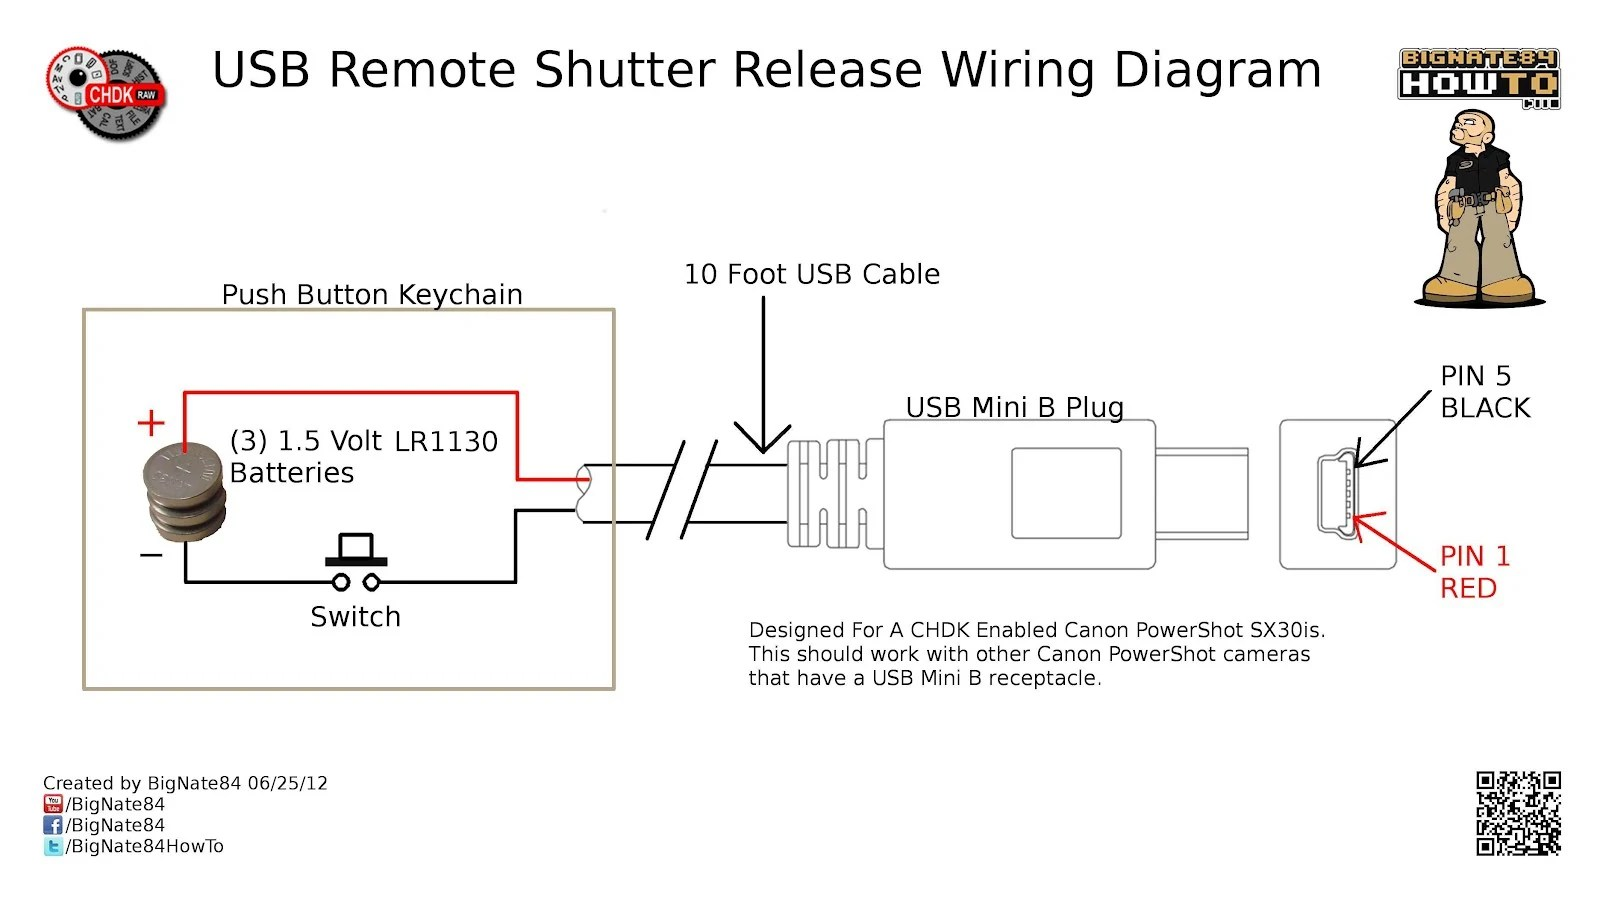 medium resolution of 0001 usb remote shutter wiring diagram 1 jpeg